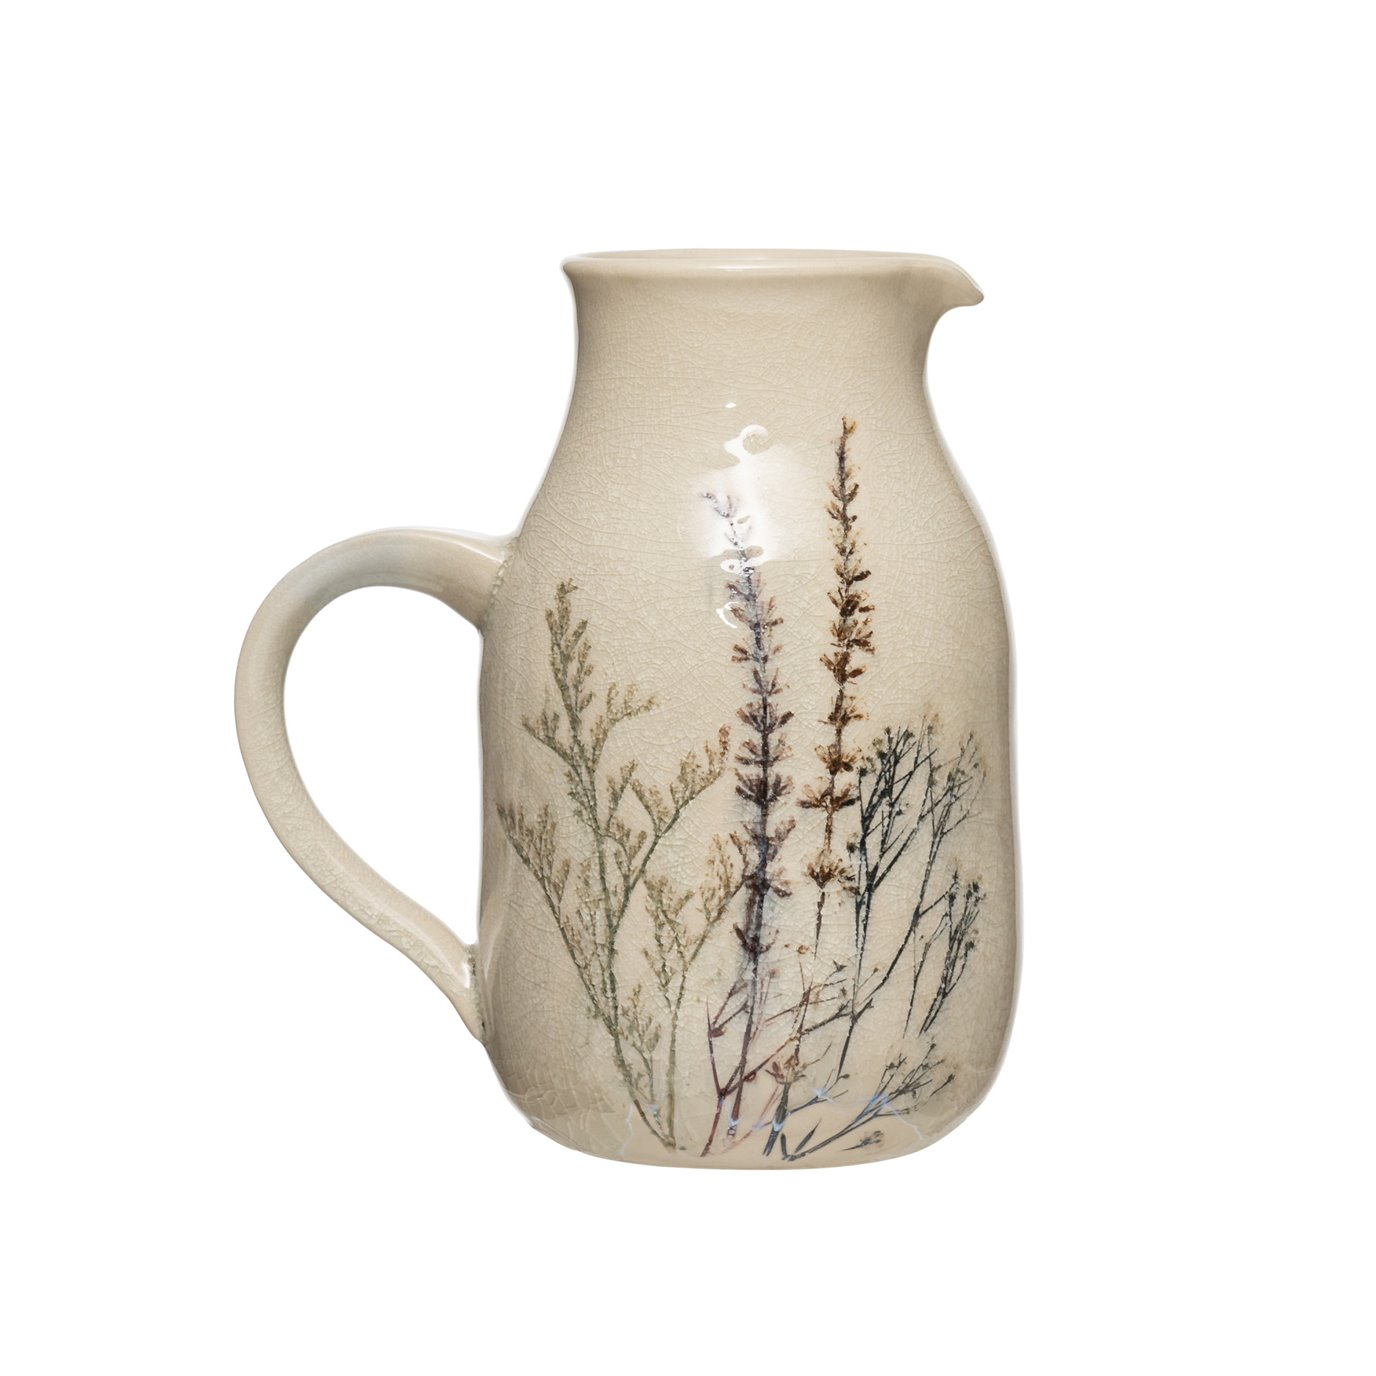 32 oz. Stoneware Debossed Floral Pitcher with Reactive Crackle Glaze Finish (Each One Will Vary)